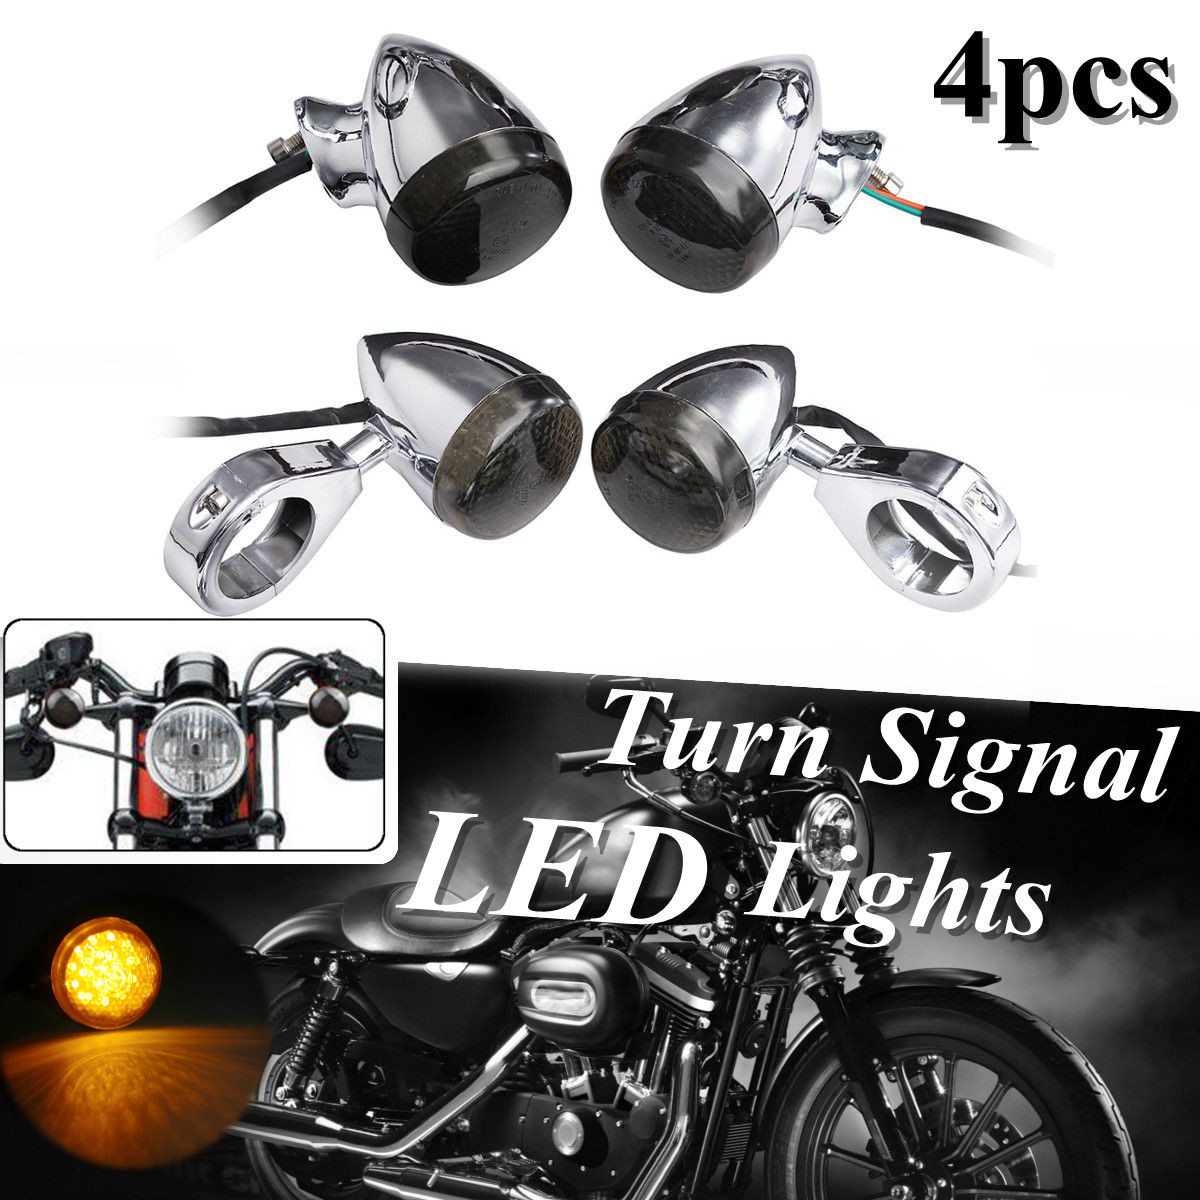 4 Pcs Front Rear Motorcycle LED Turn Signal Indicator Light For Davidson Sportster Dyna Motorbike with 39mm fork tube